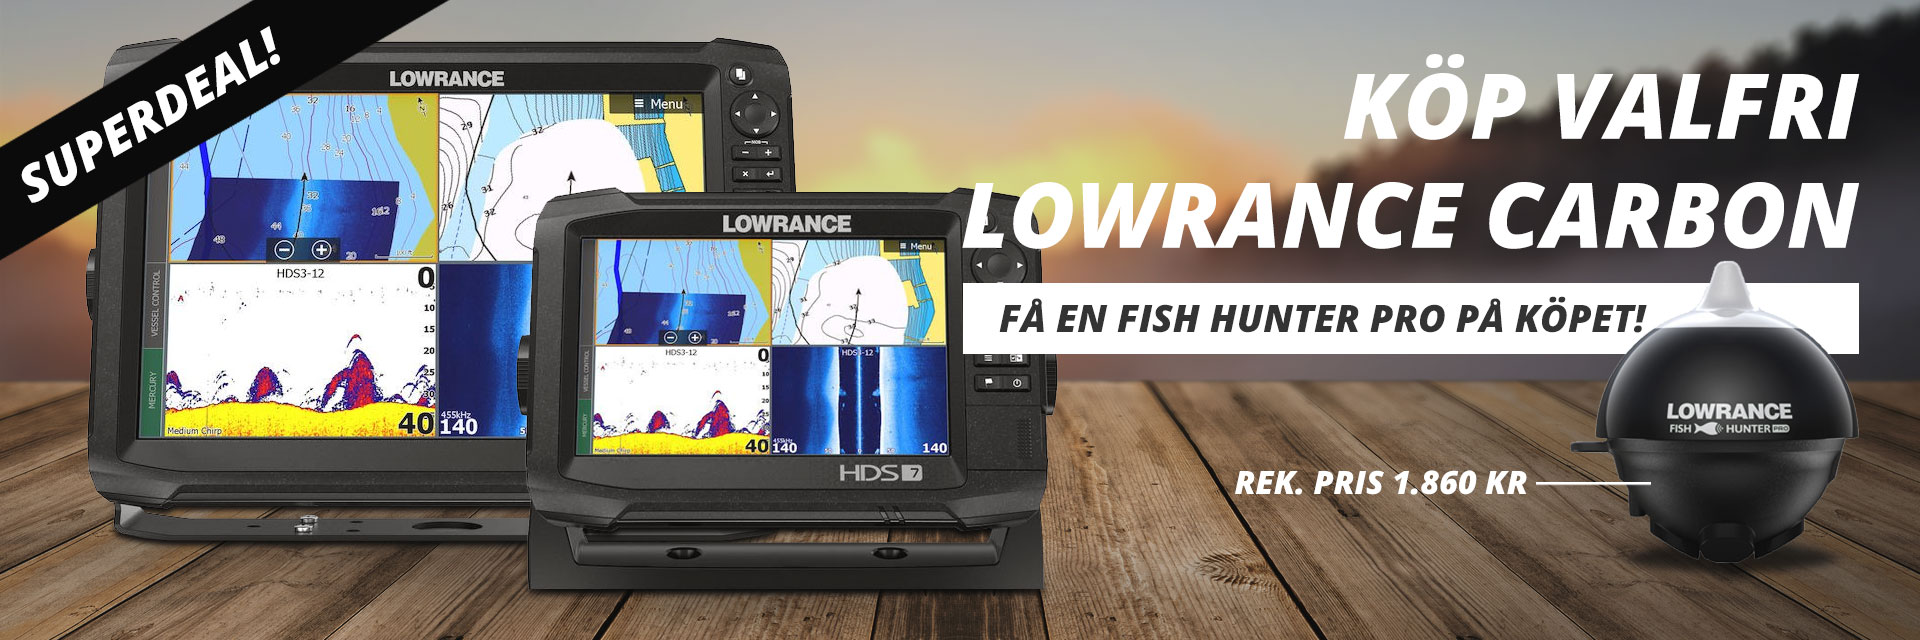 Lowrance Fish Hunter Pro